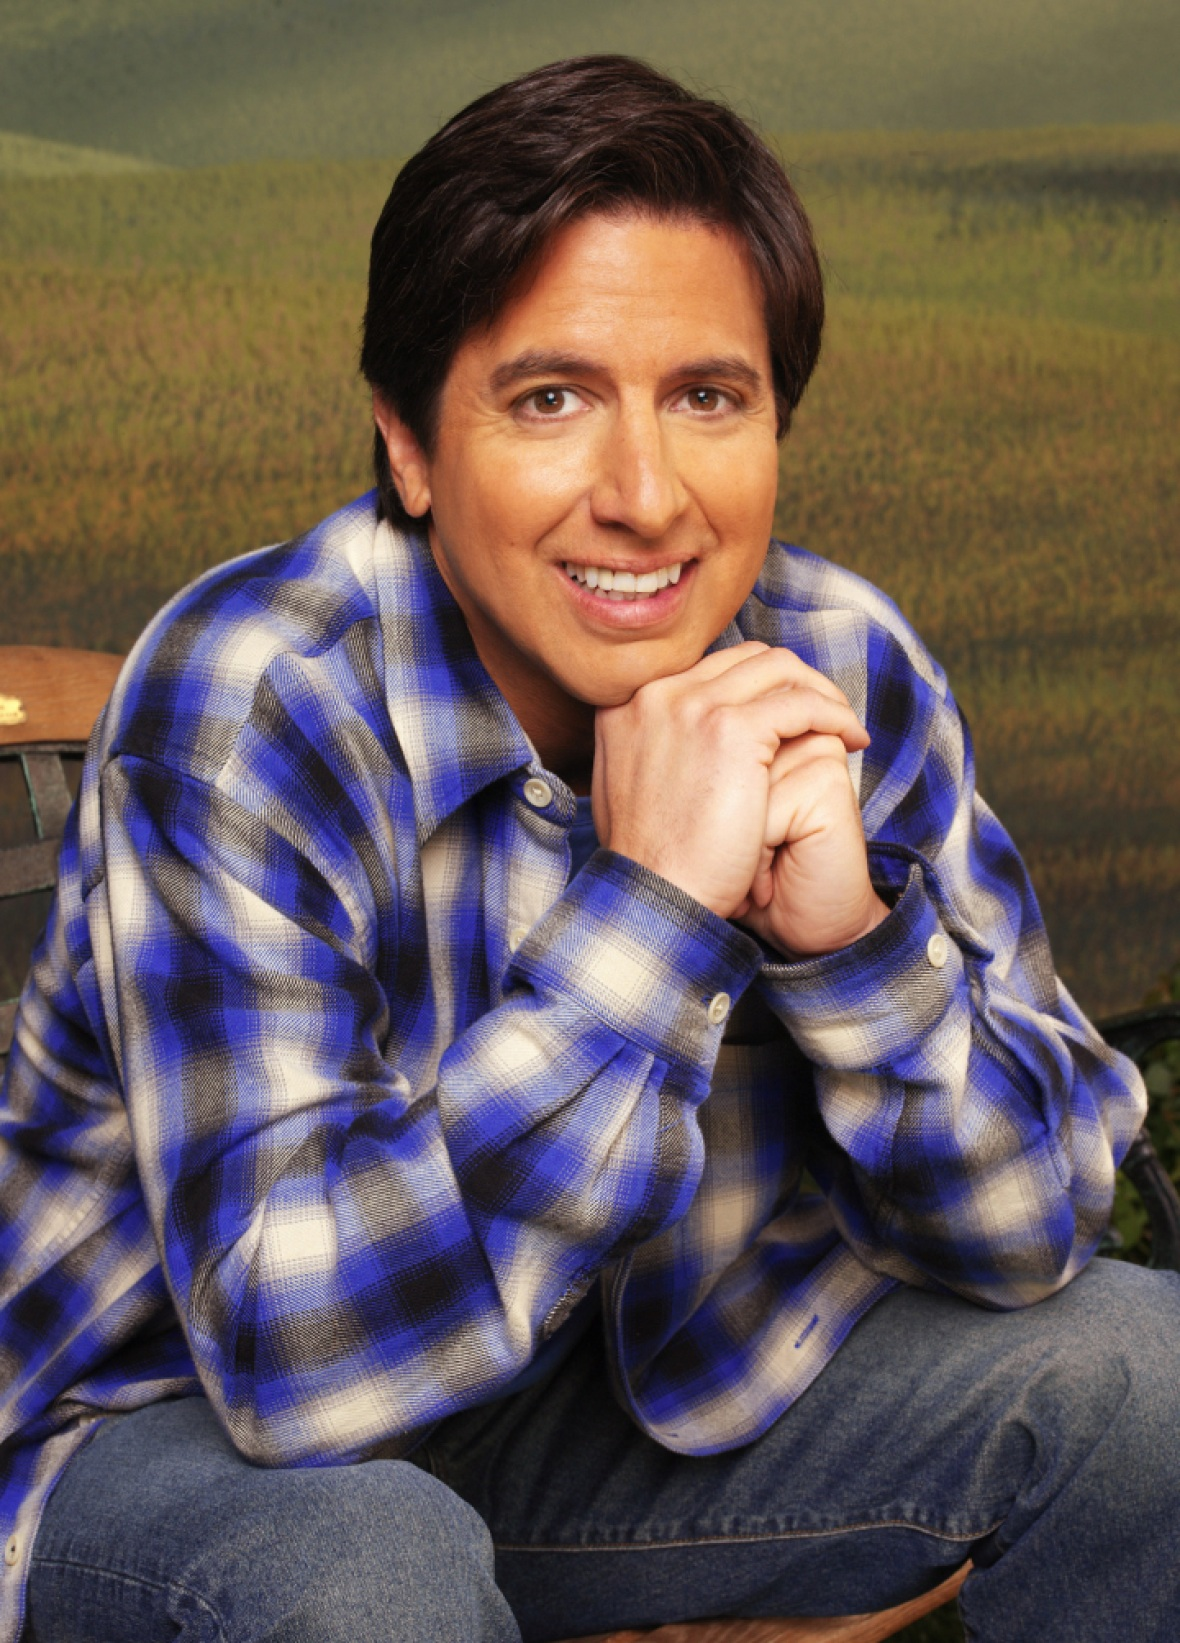 ray romano getty images